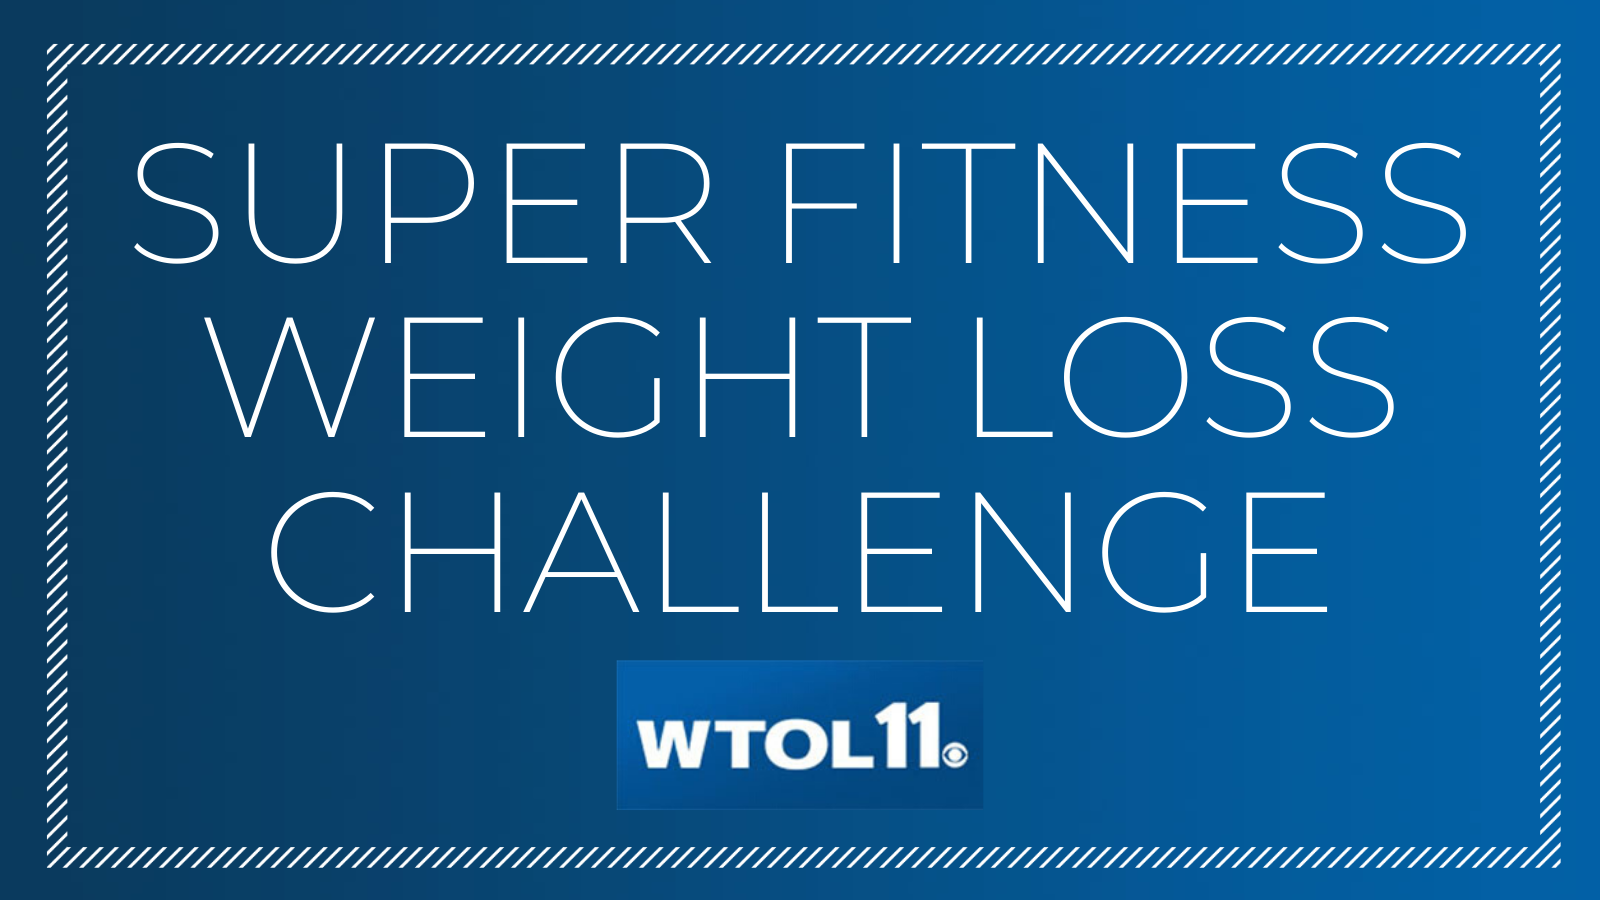 SUPER FITNESS WEIGHT LOSS CHALLENGE